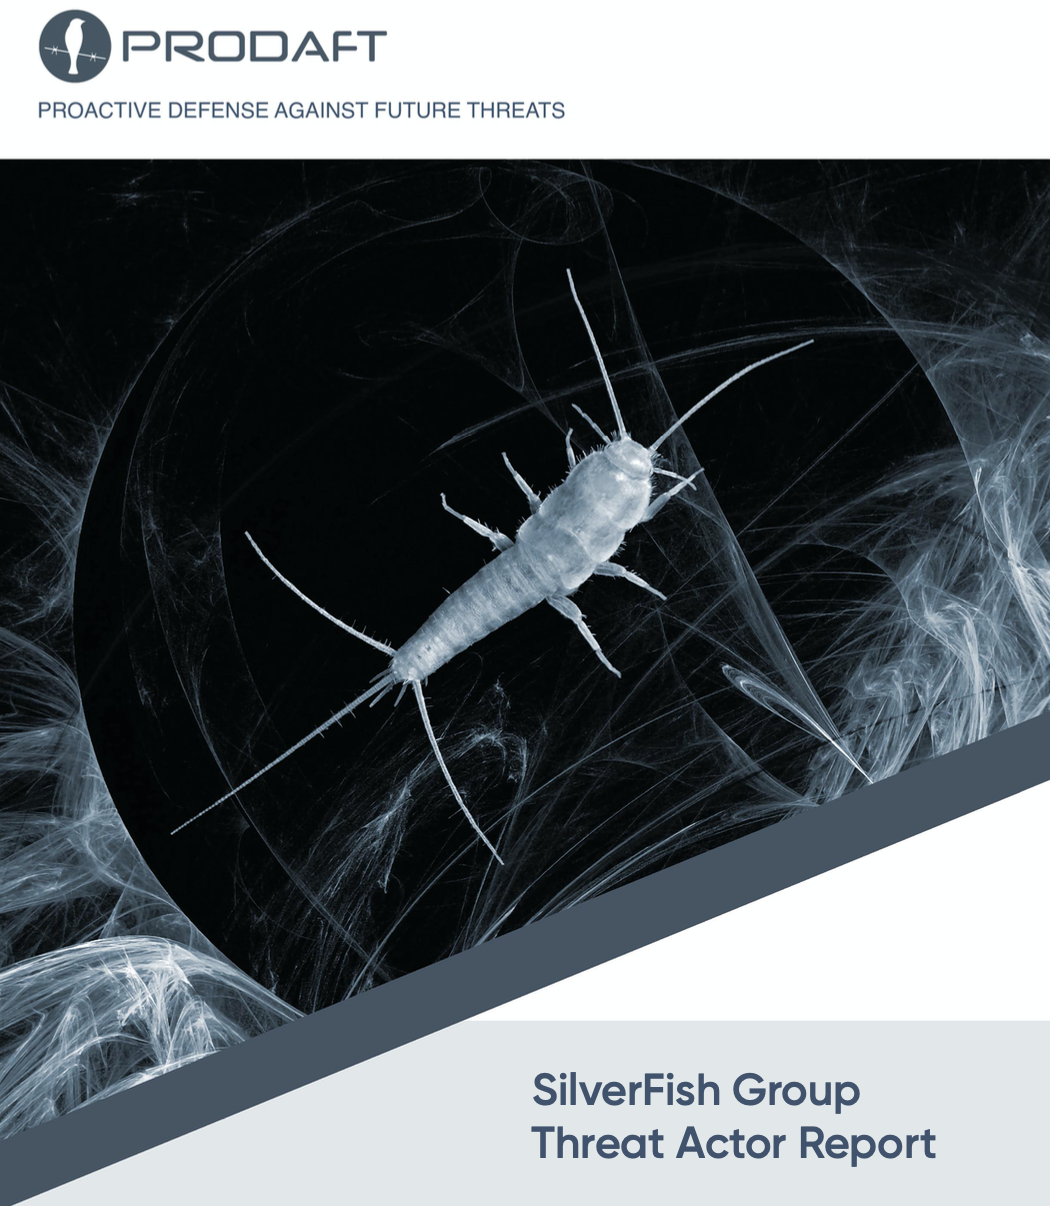 [SILVERFISH] Global Cyber Espionage Campaign Case Report